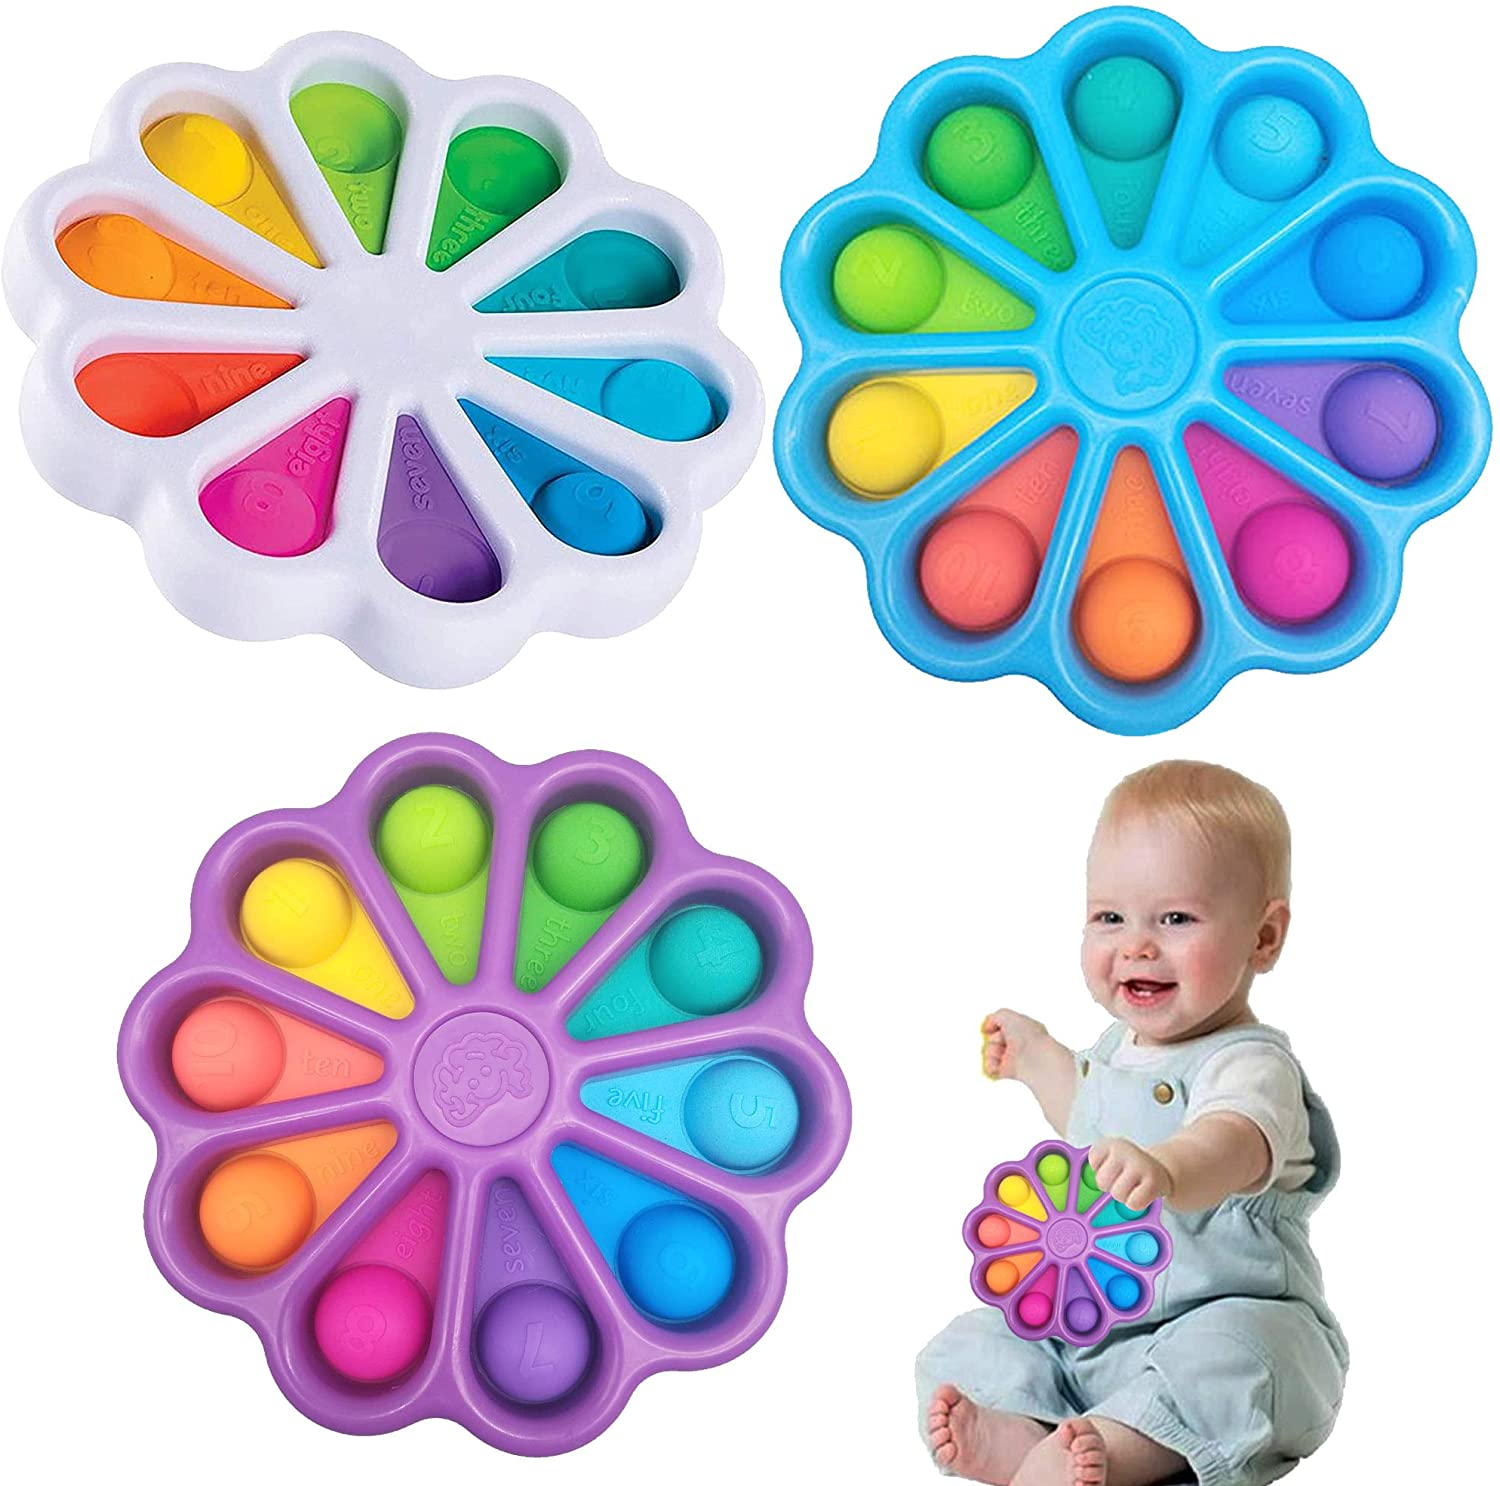 Flower Dimple Simple Squeeze Toys Sensory Toy, Stress Relief Hand Toys For Kids Adults